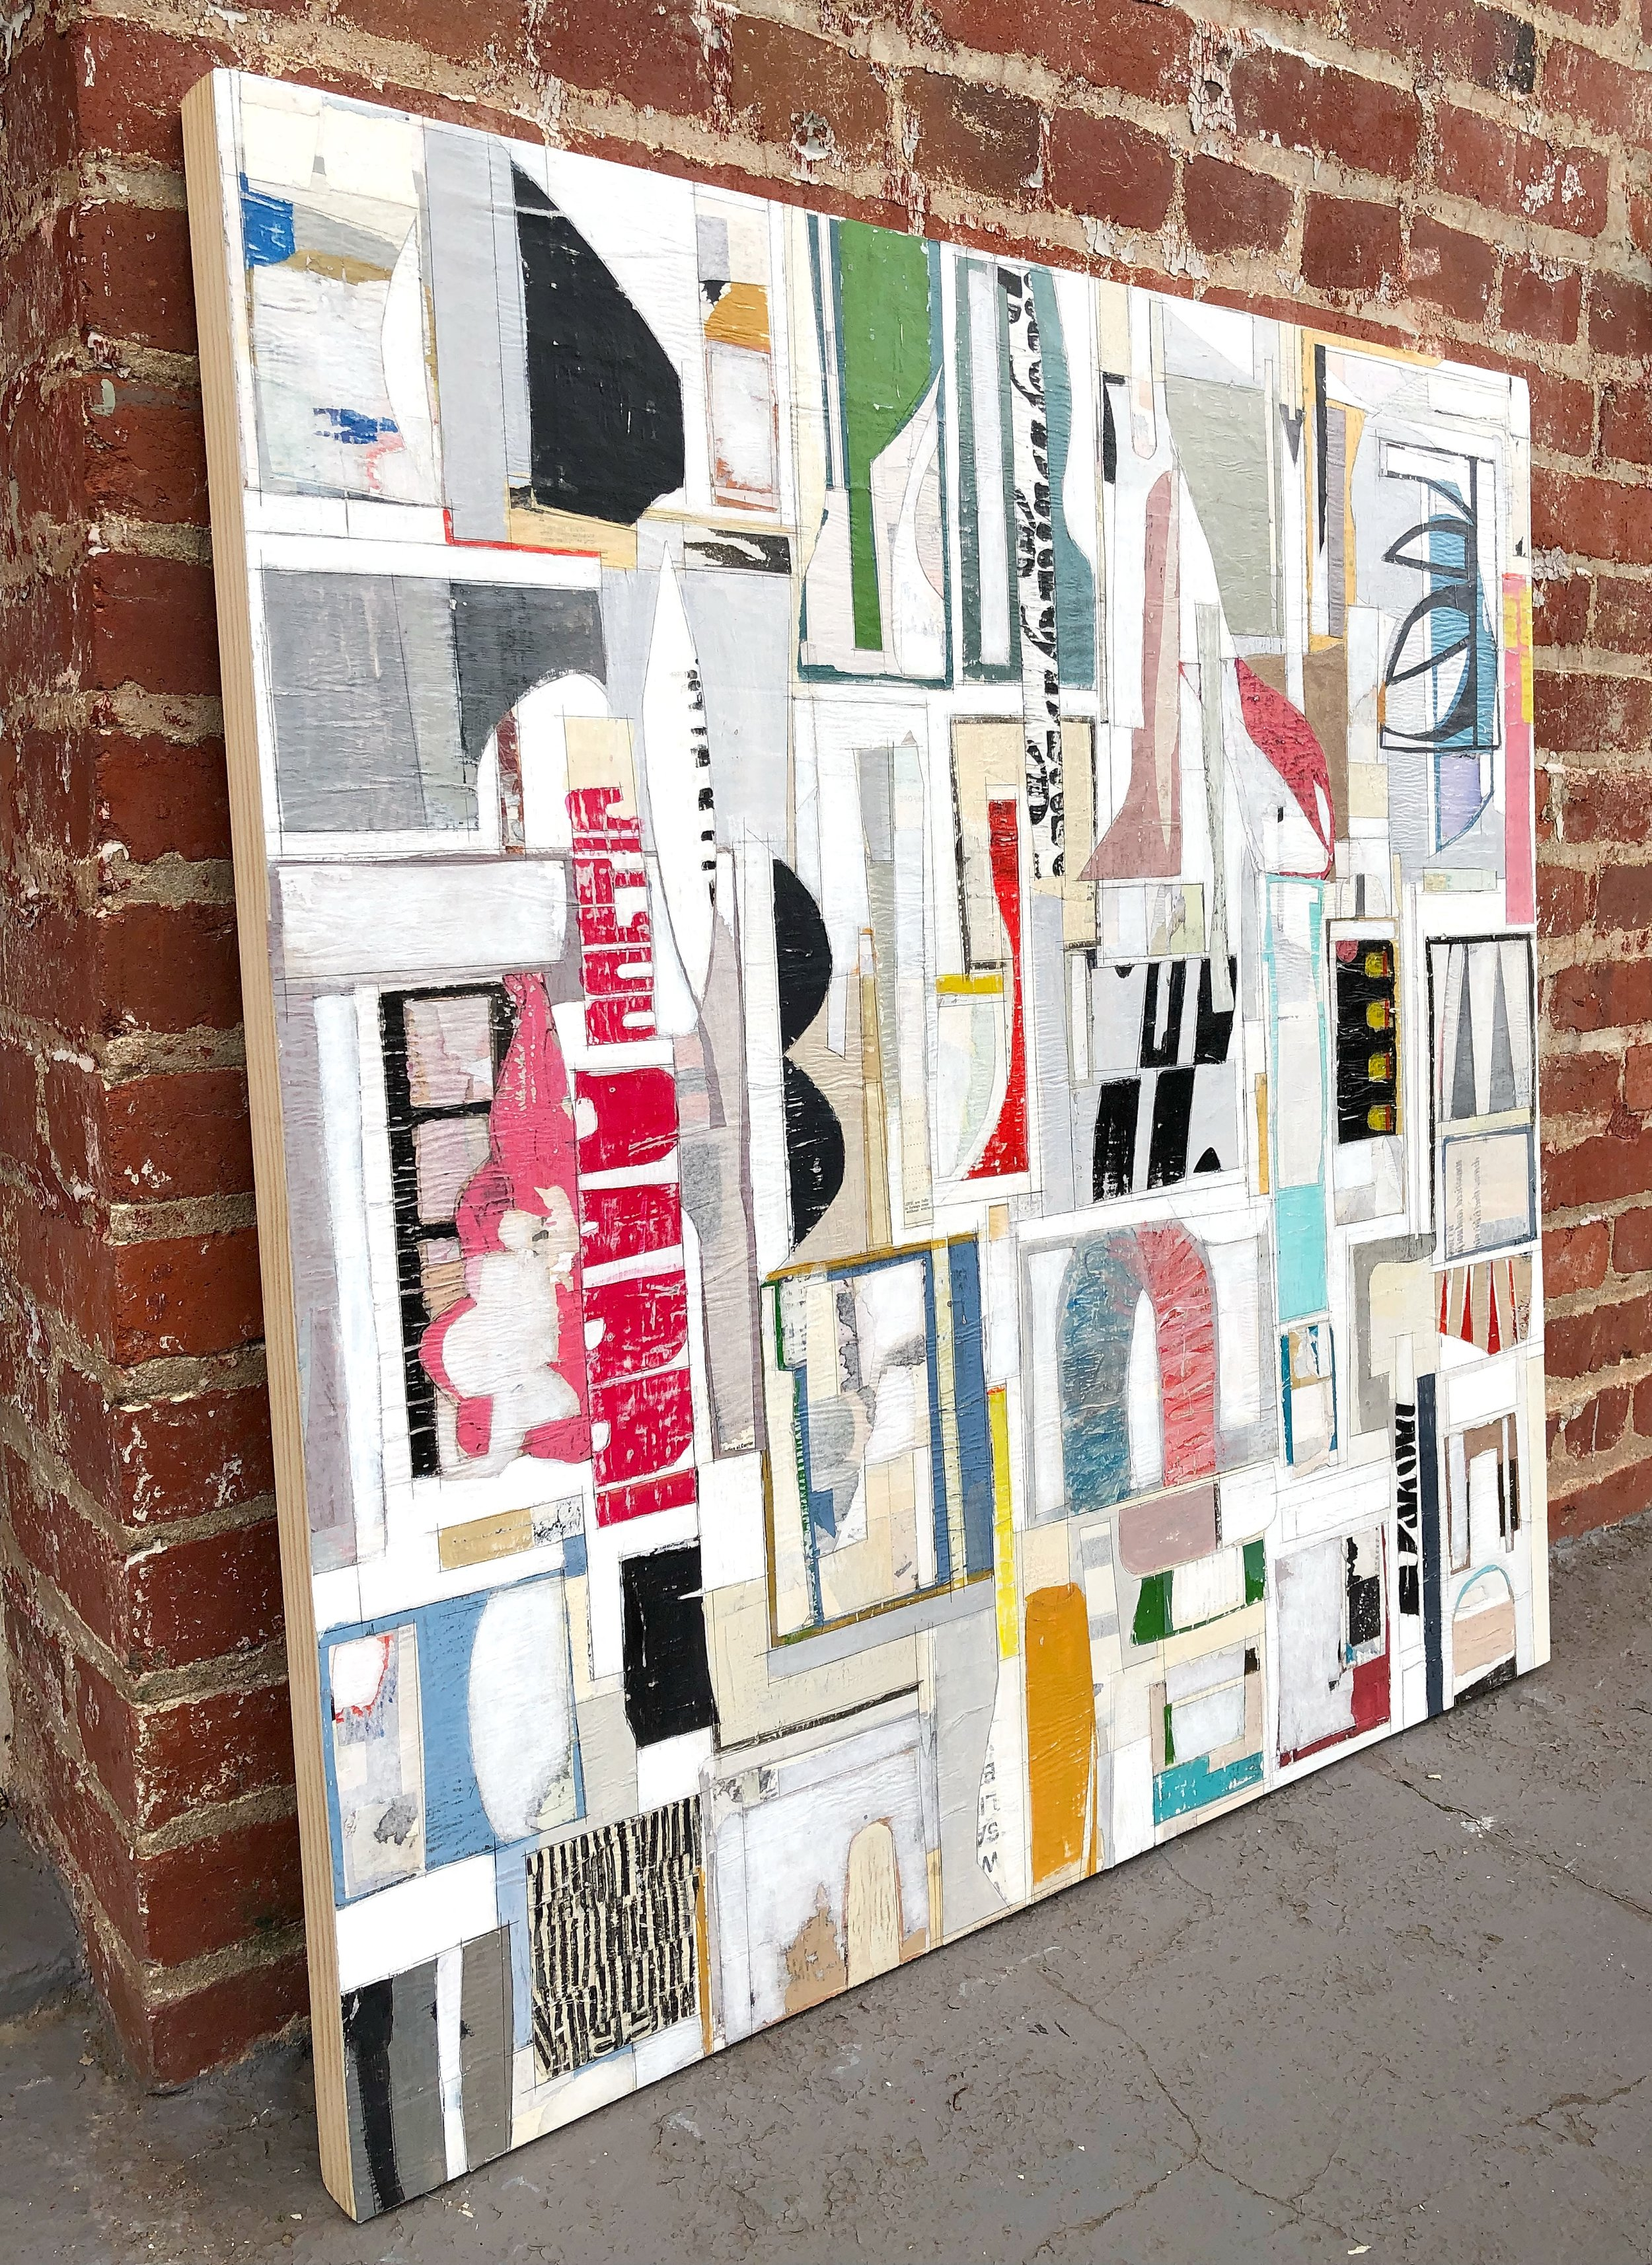 NEW! AVAILABLE $1400, December 2018, 3' x 3' Layered, mixed media, decollage painting on framed hardwood. Finished with archival wax. Ready to hang. Available to see in Woodley Park